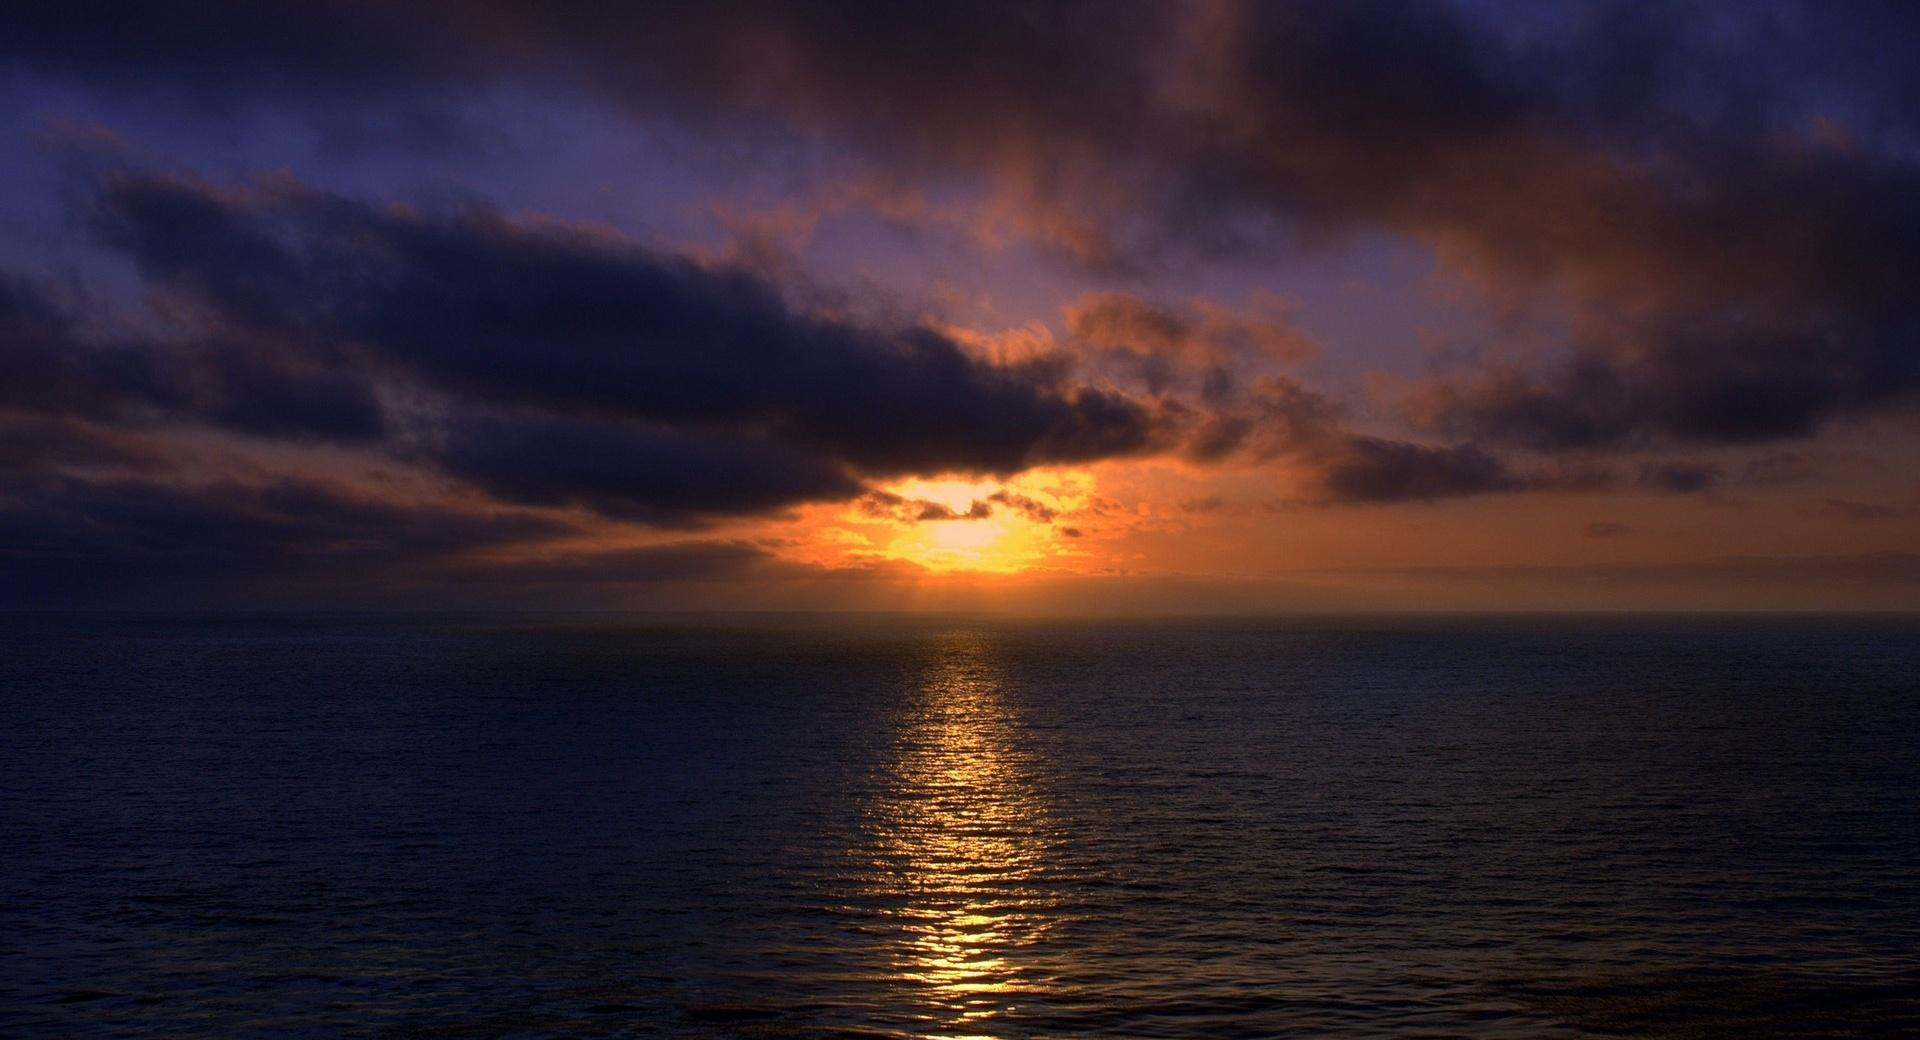 Sunset, Open Sea wallpapers HD quality